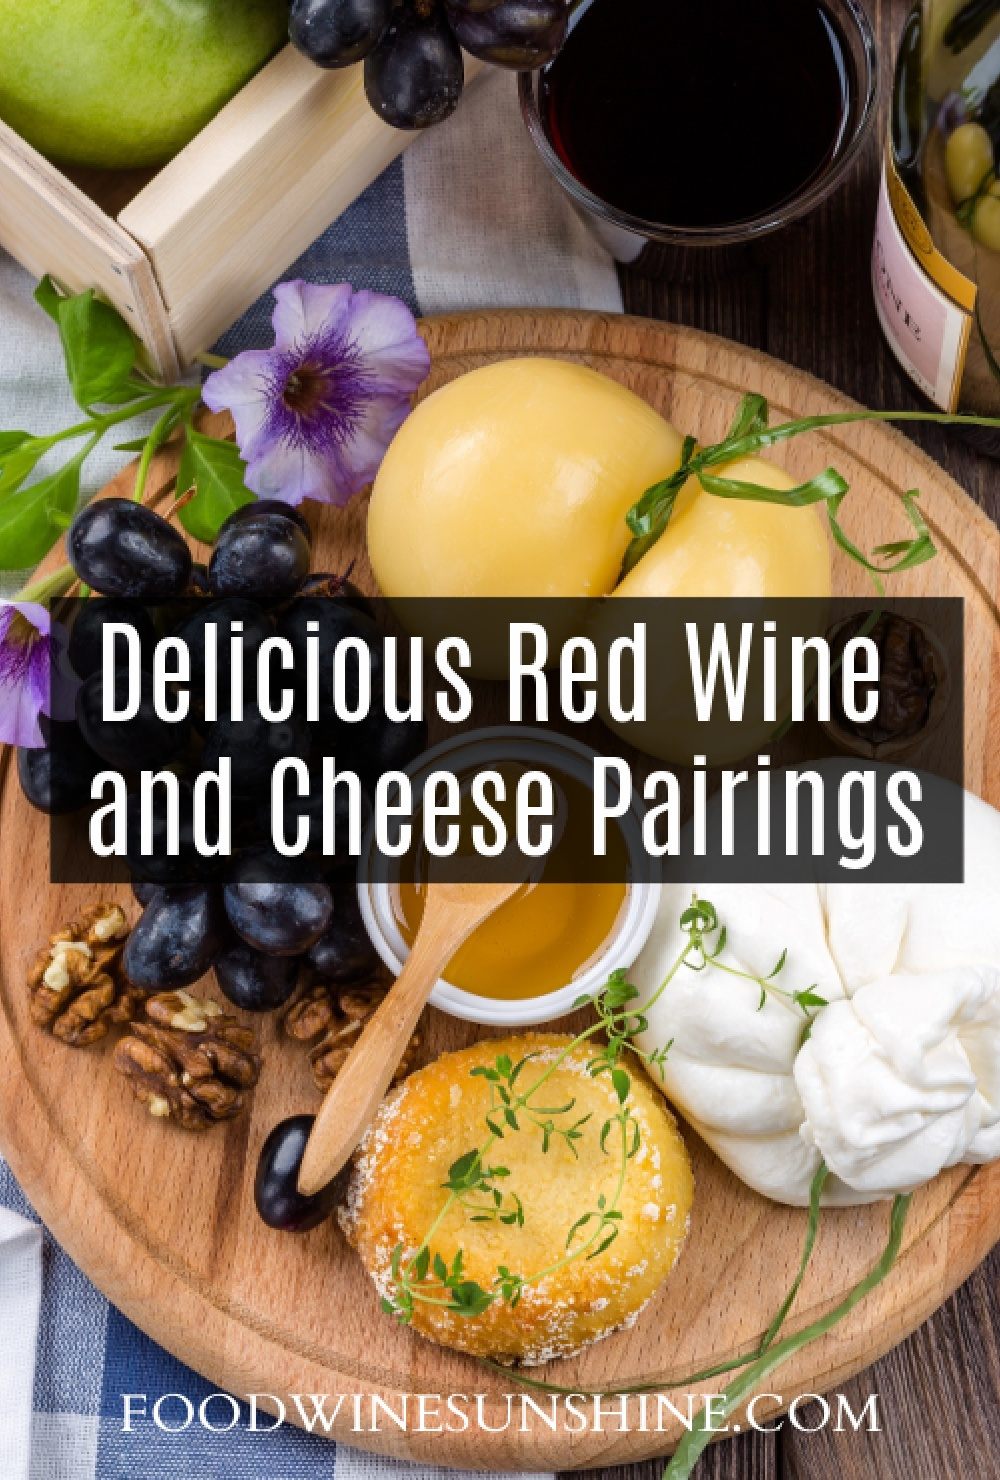 Delicious Red Wine and Cheese Pairings